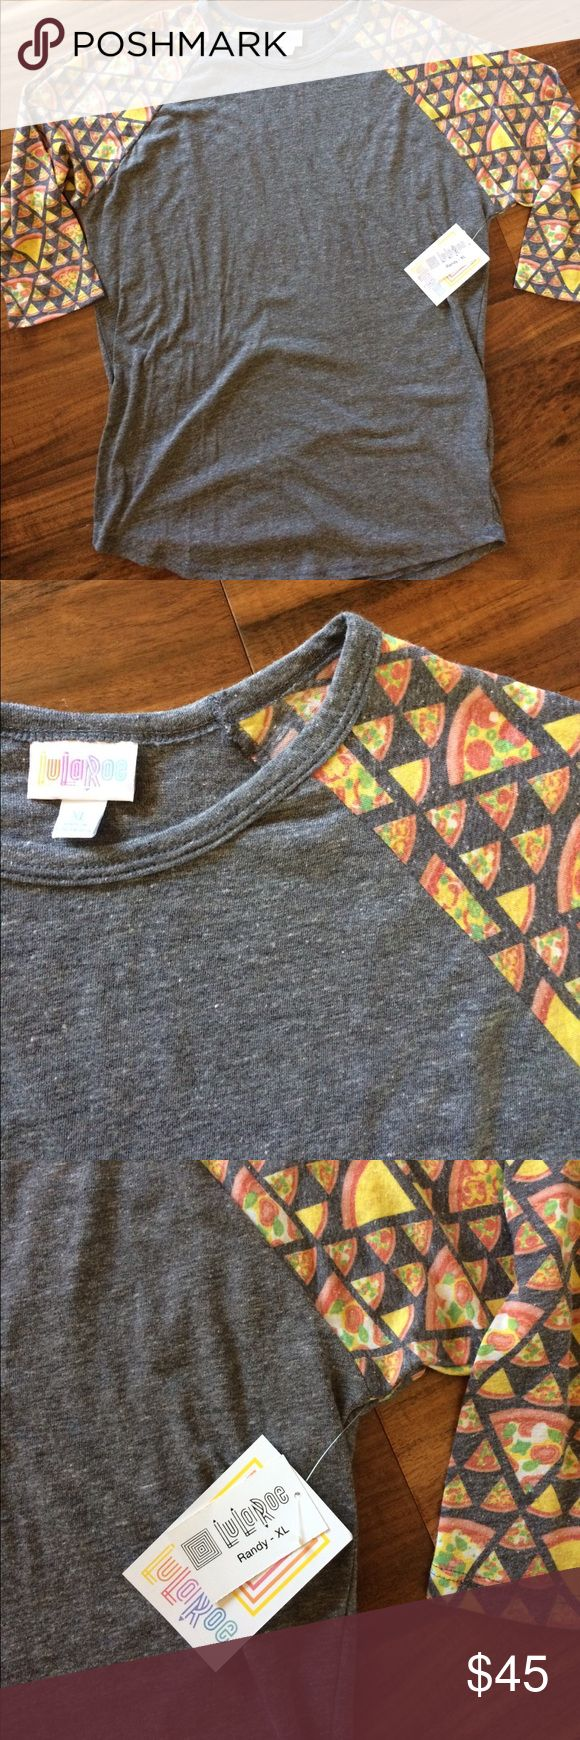 LuLaRoe Randy XL pizza!!! LuLaRoe Randy tee in size XL. Heathered grey body with pizza design on the sleeves!!! New with tags! Unicorn alert!!! LuLaRoe Tops Tees - Long Sleeve